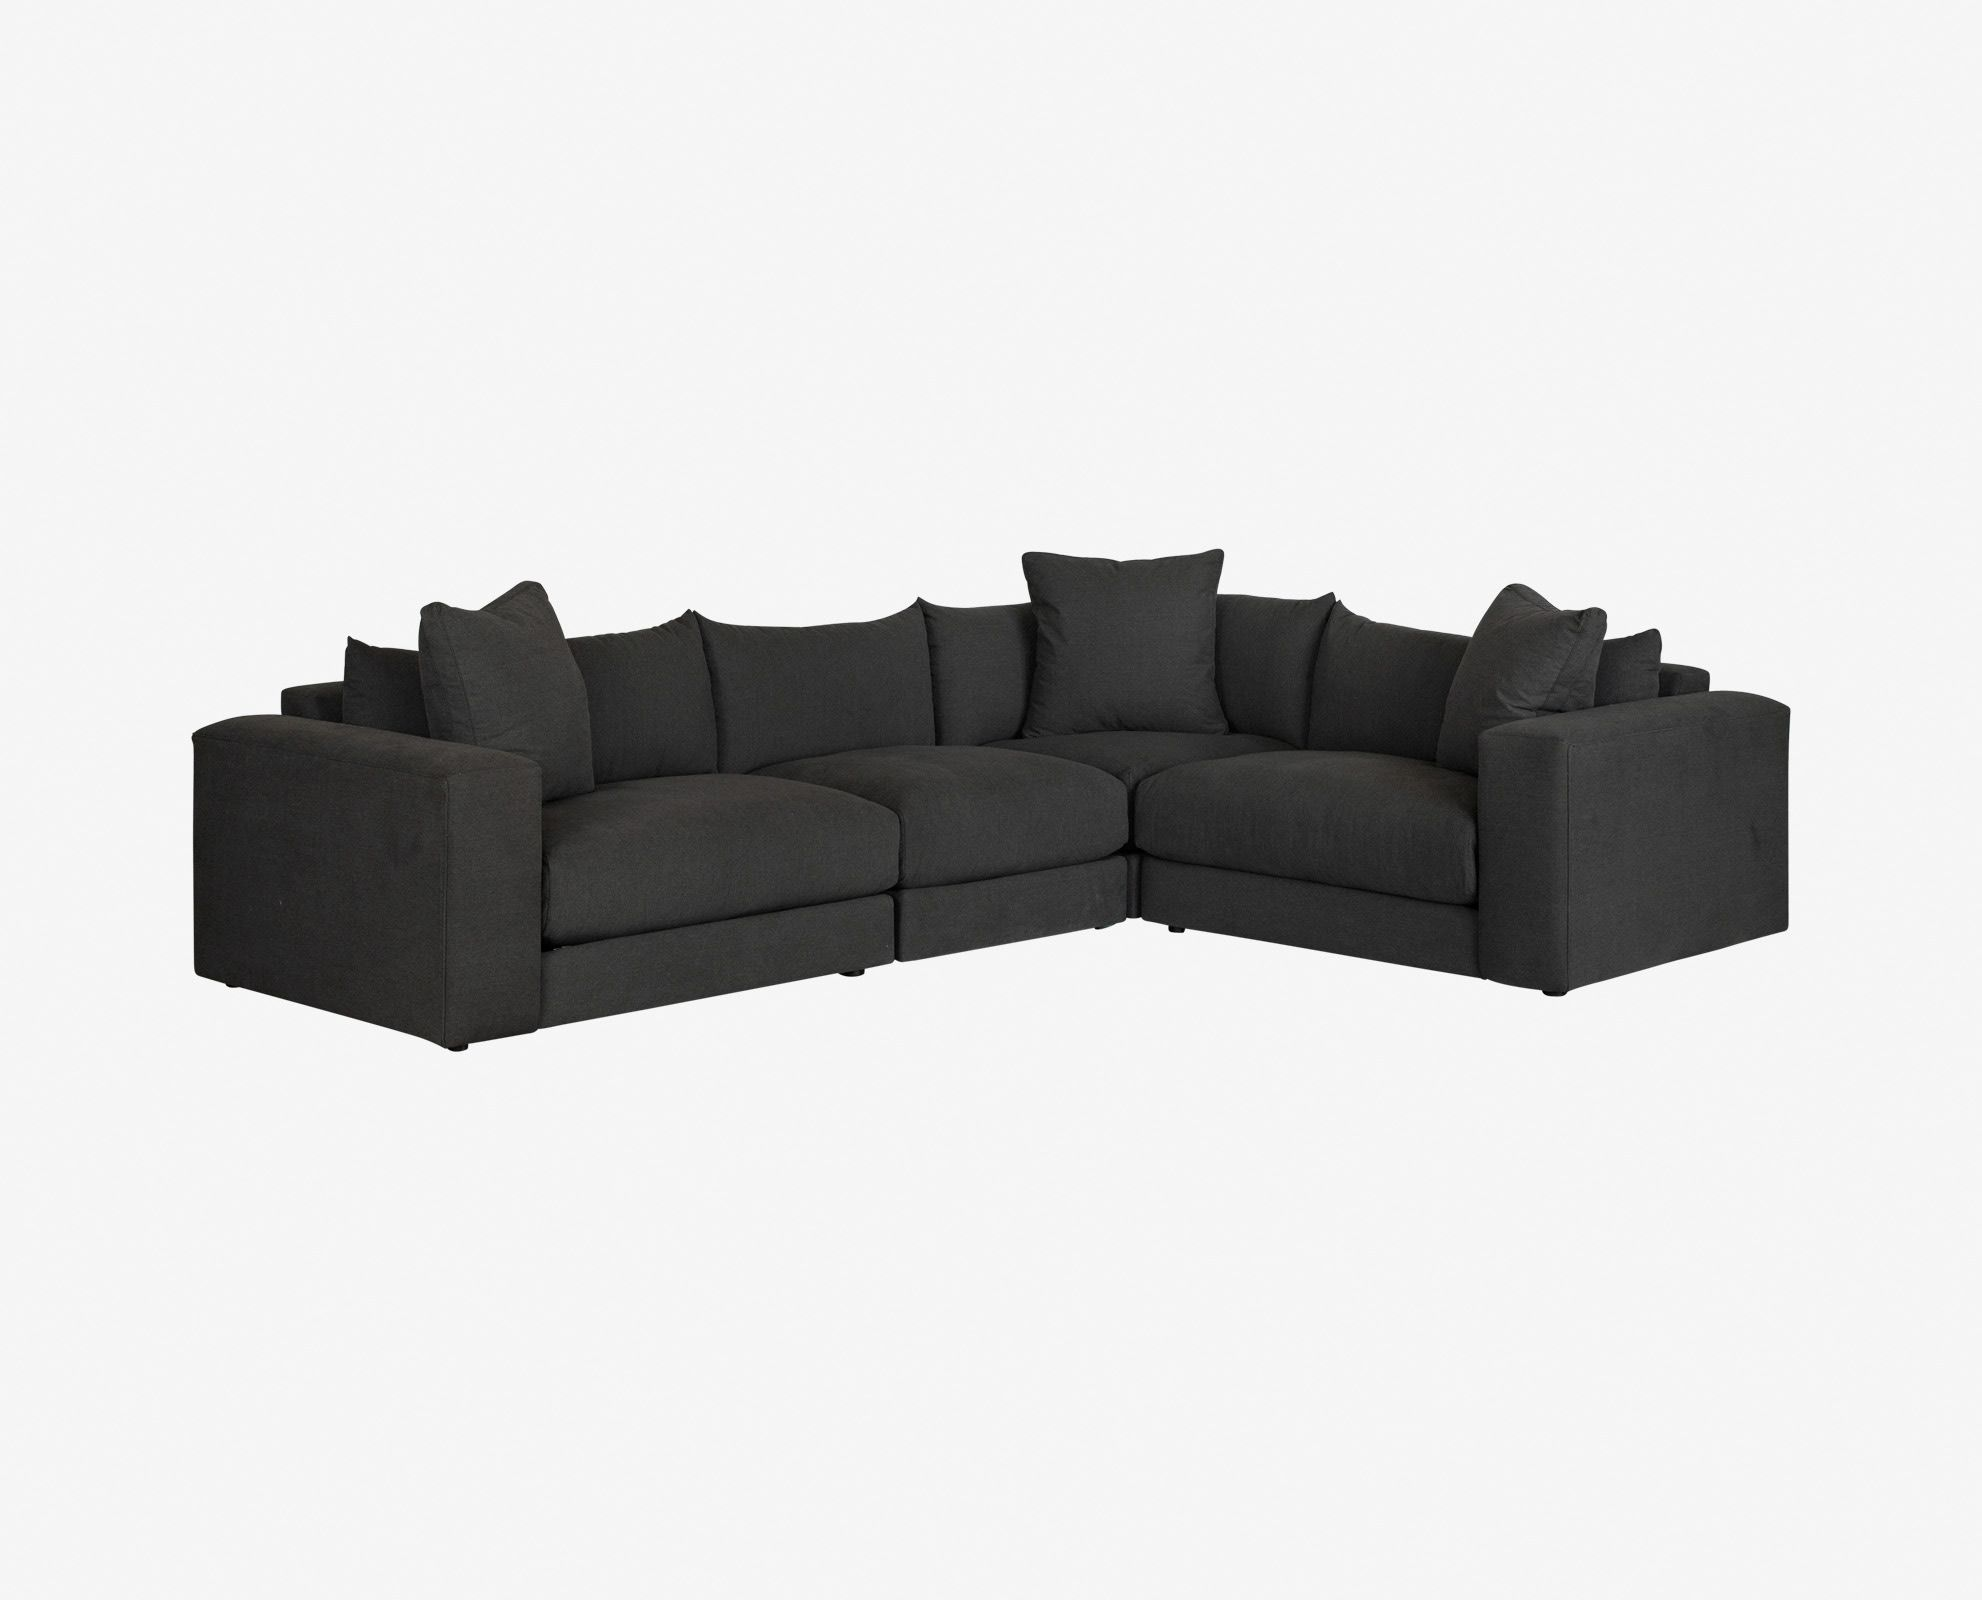 1st Pick Dania Versatility And Comfort Are Key With The Adrian Modular Unique Living Room Furniture Modular Sectional Modern Furniture Living Room